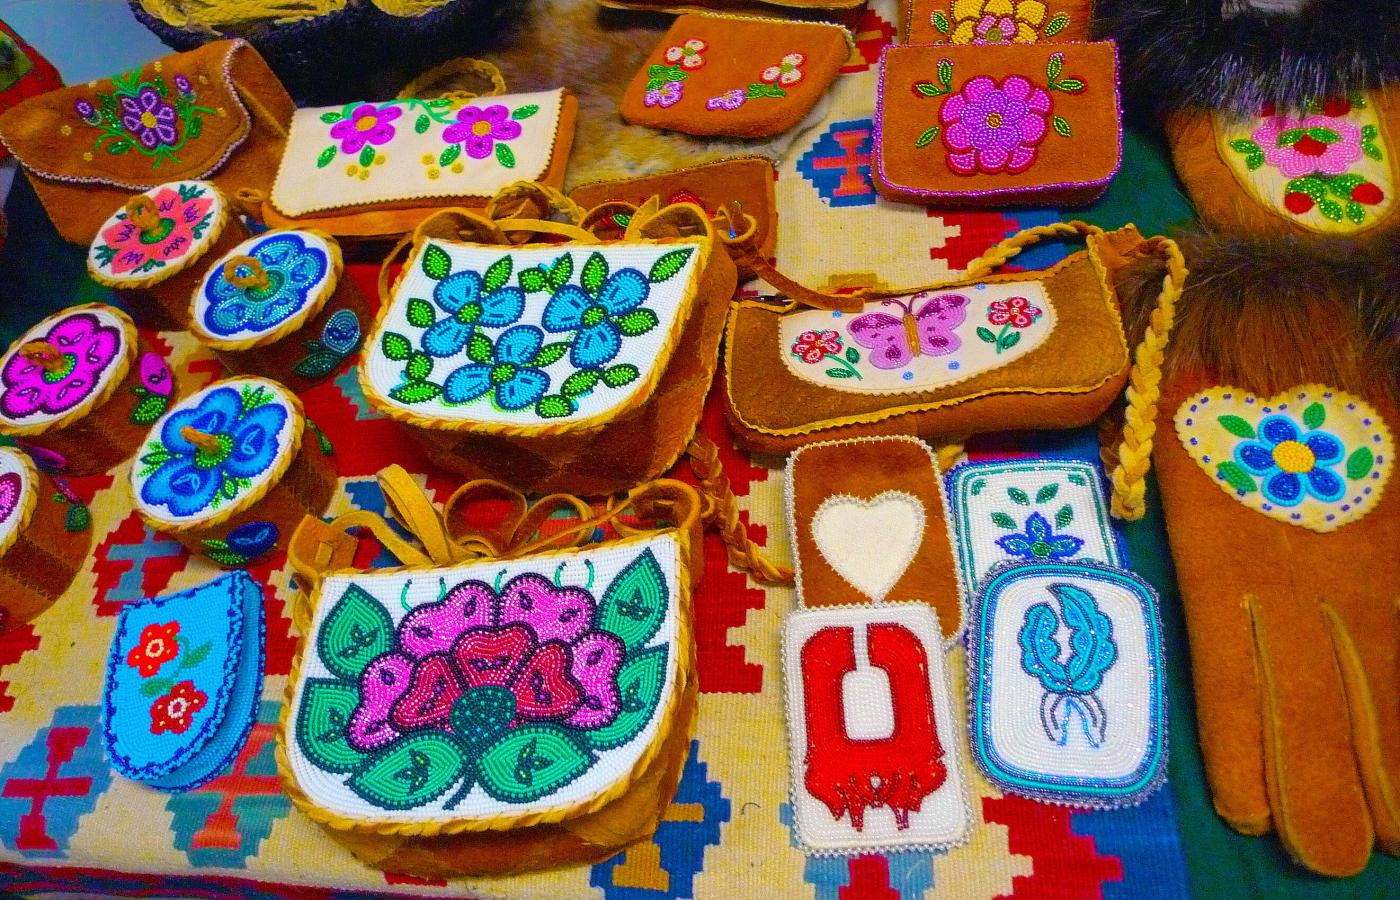 Beaded arts and crafts displayed on a table at a craft show